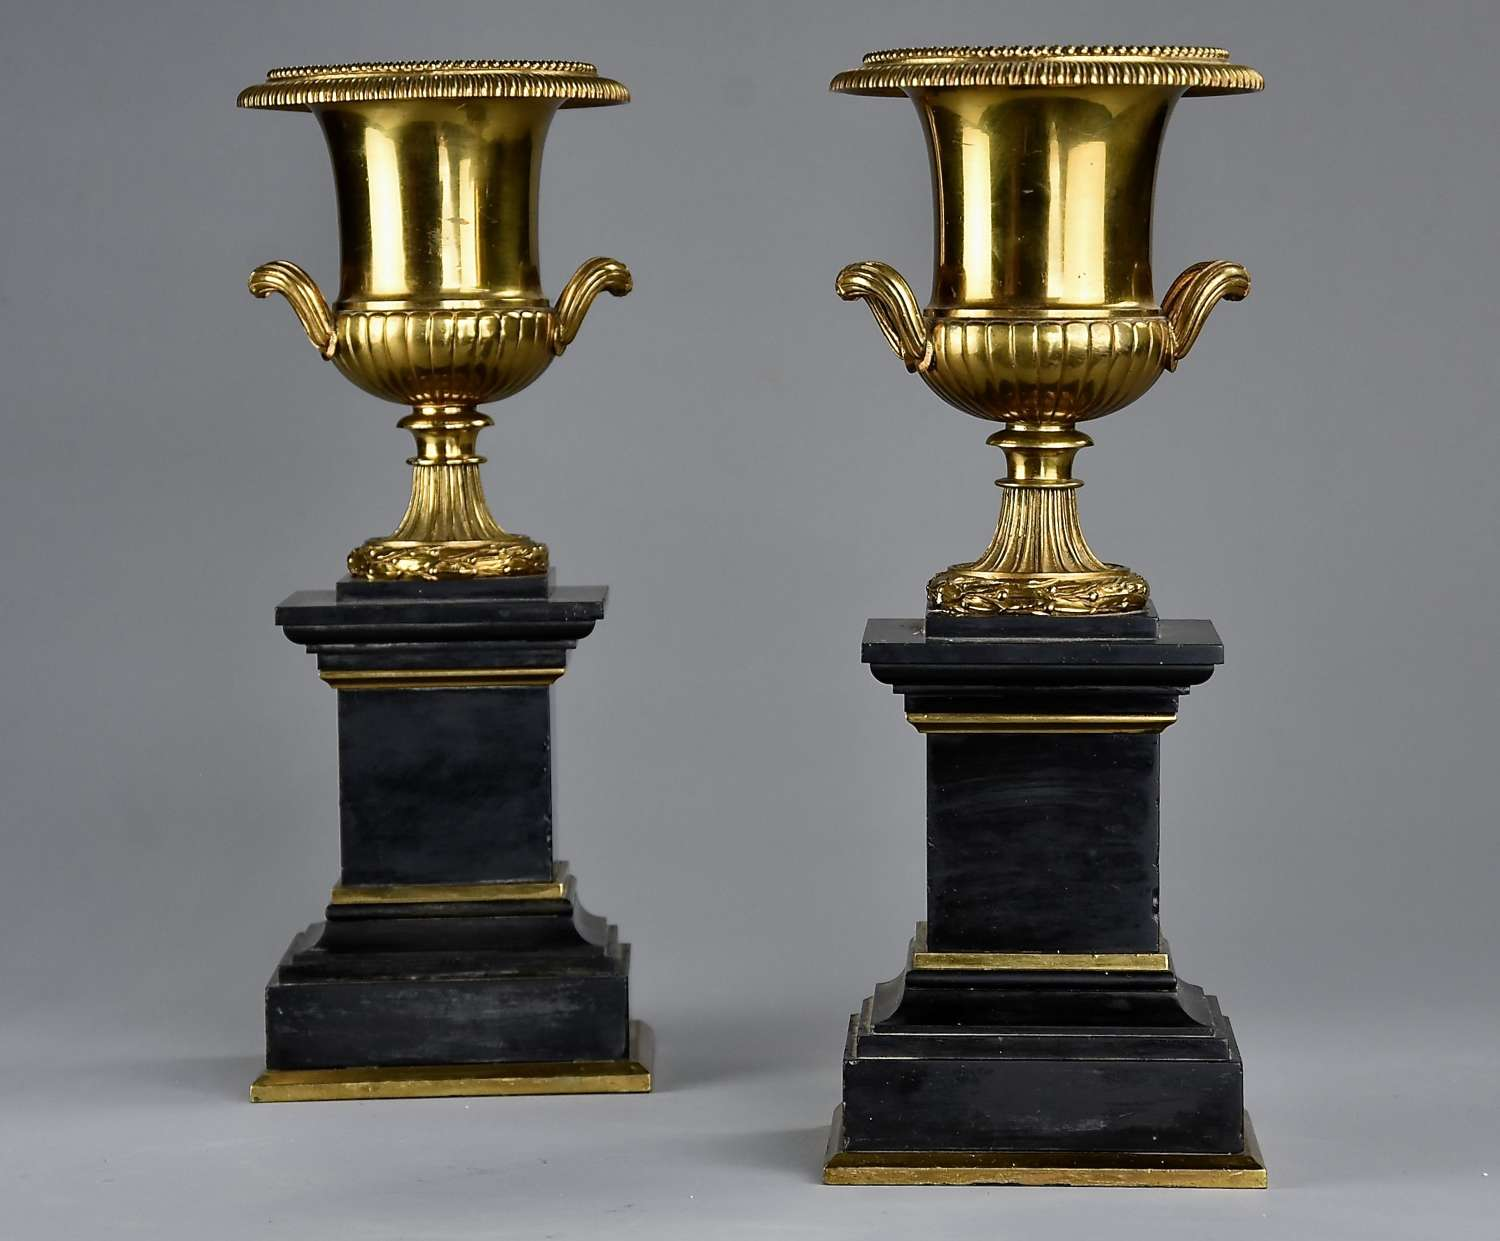 Highly decorative pair of French late 19thc brass campana urns